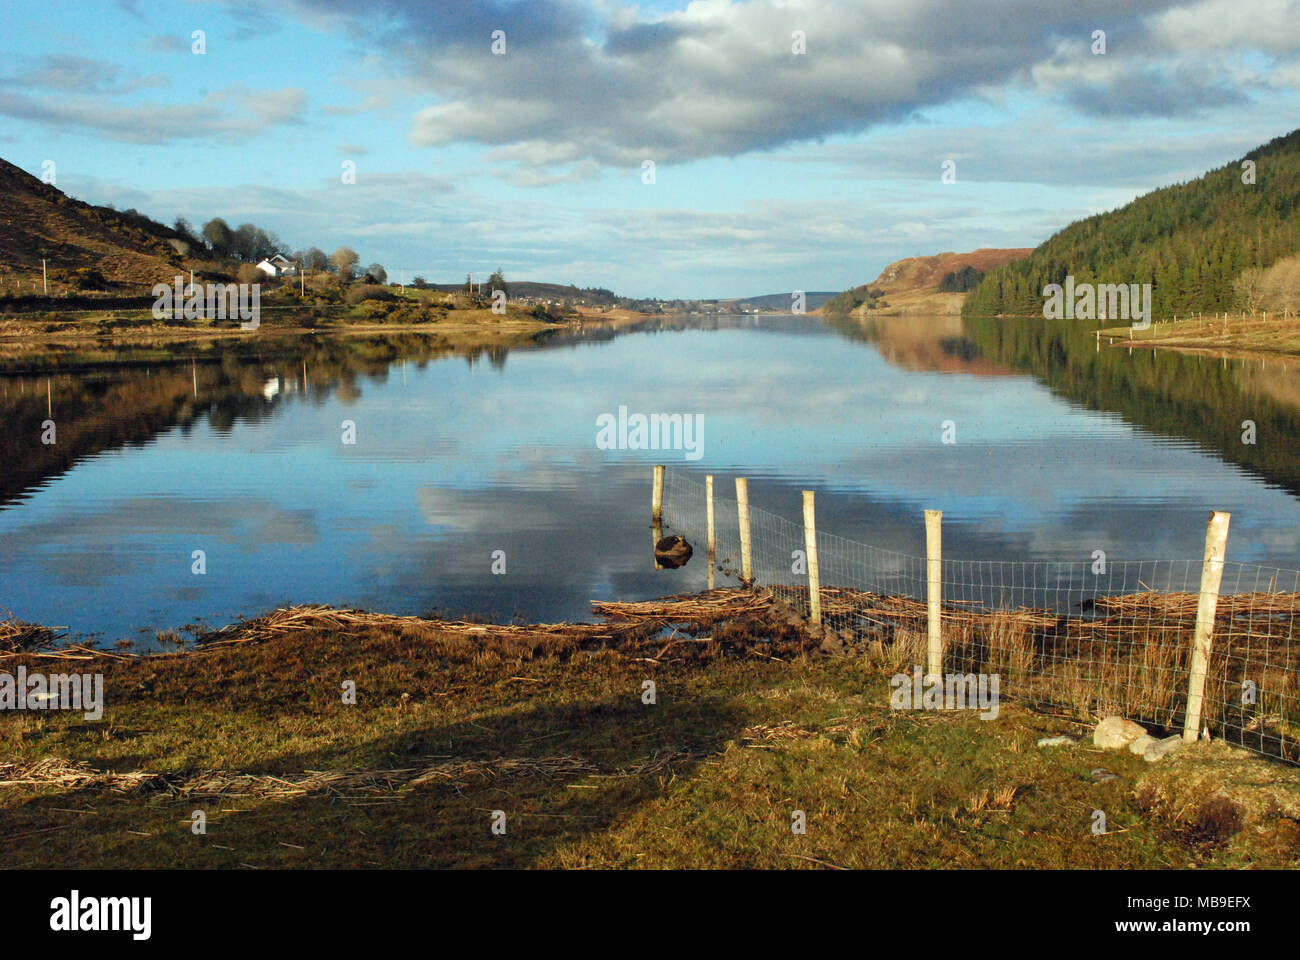 View of Lough Finn near Fintown in County Donegal, Ireland. Fintown railway runs along its lakeshore. - Stock Image